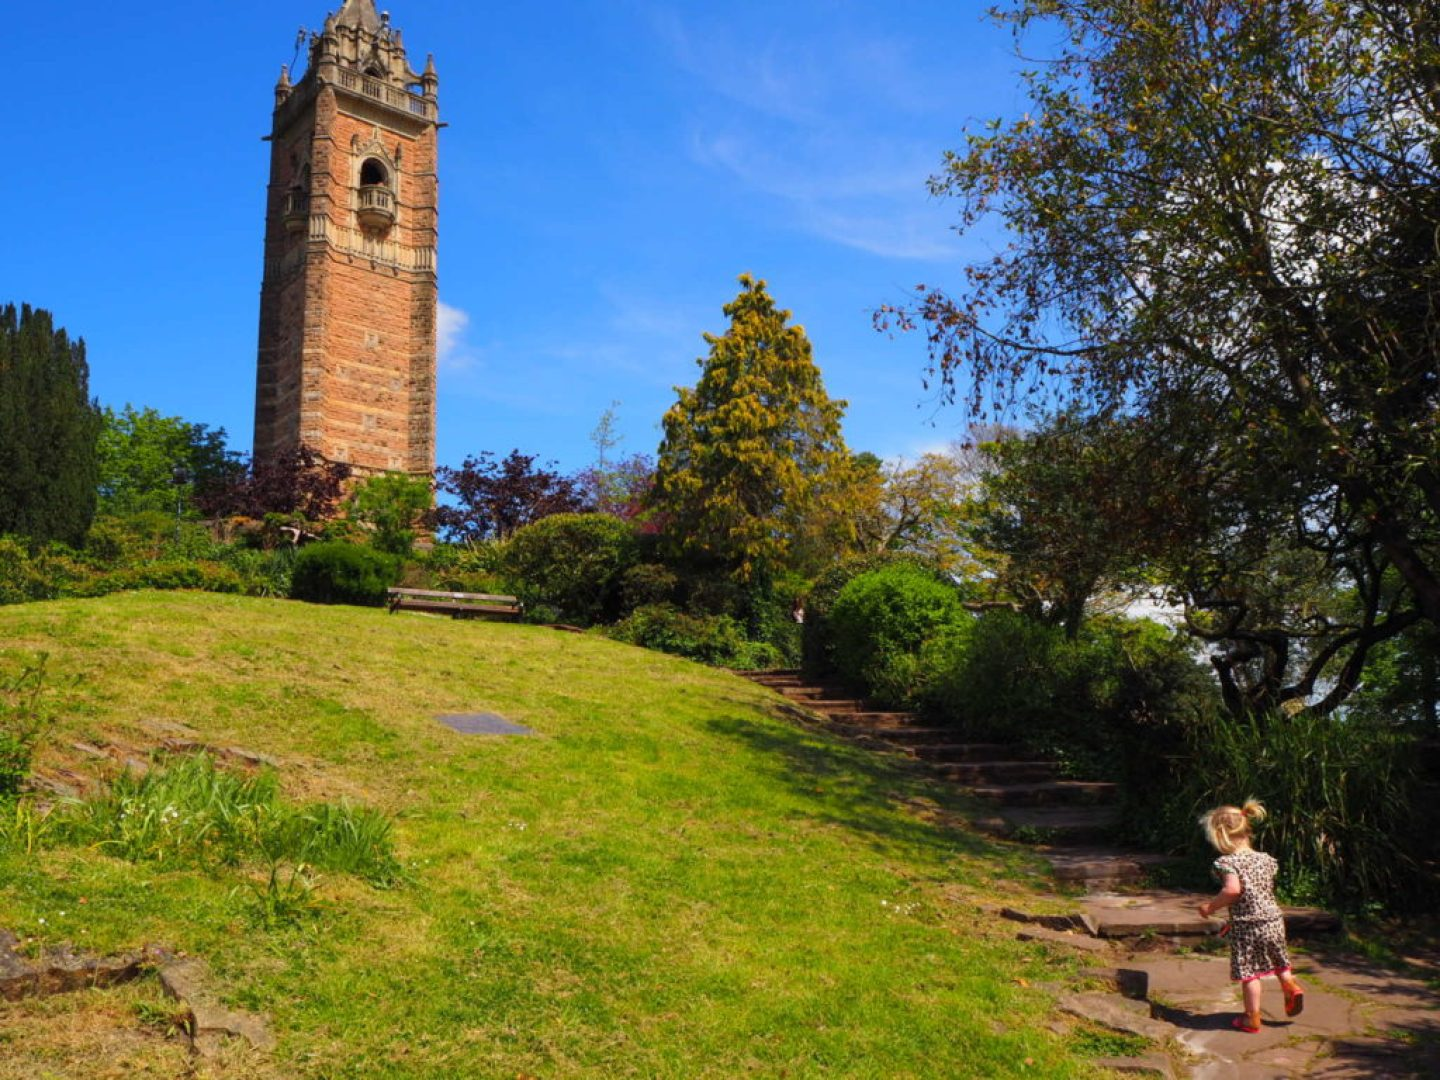 Cabot Tower, Brandon Hill, Bristol with kids